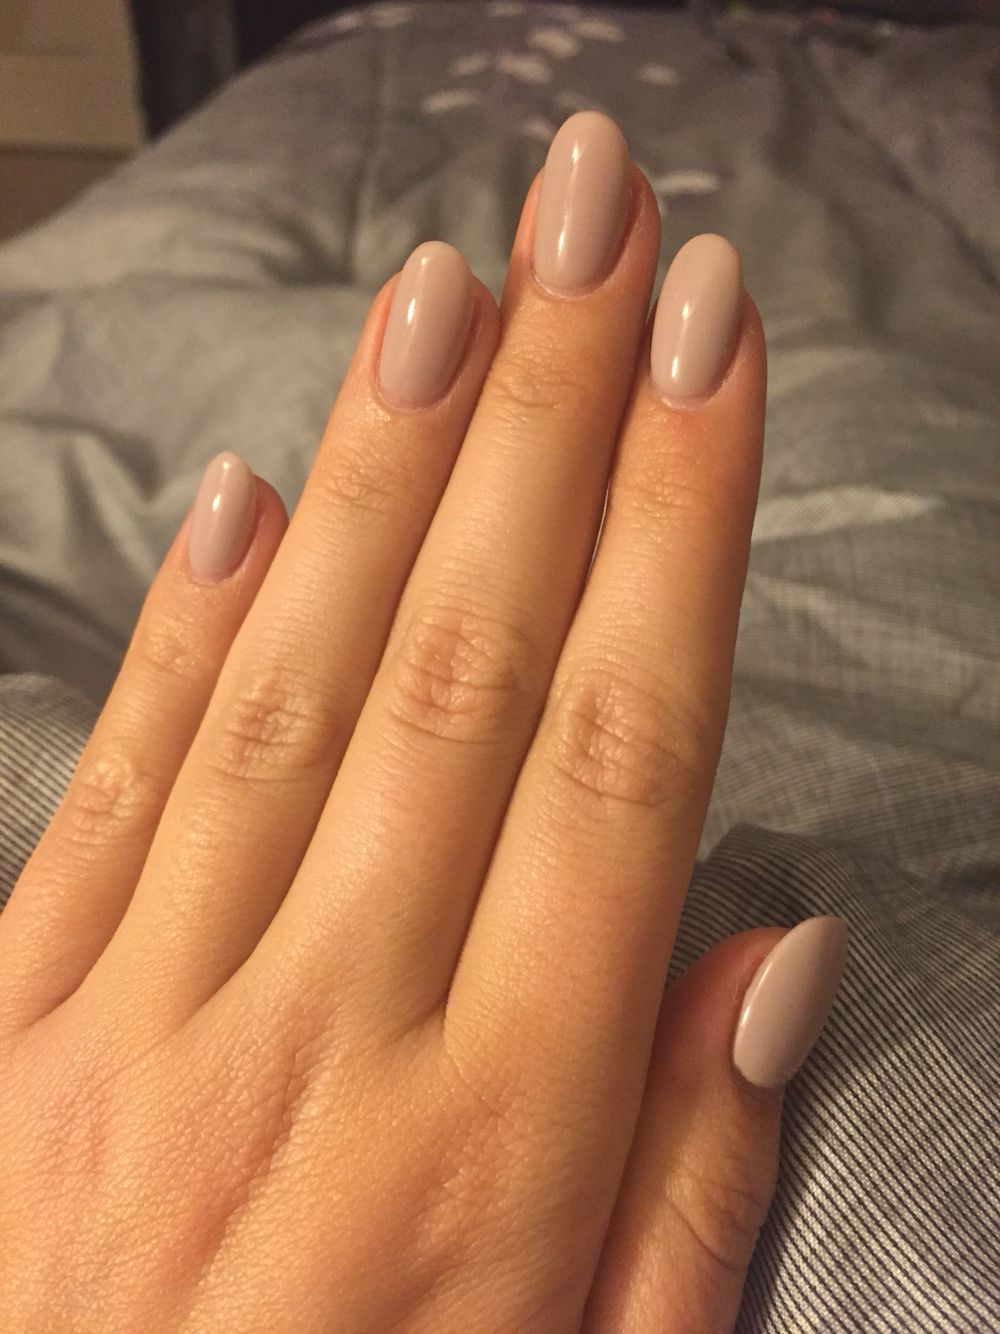 Nude rounded acrylic nails. Pinning purely for the shape and length of the nails. It's perfect!